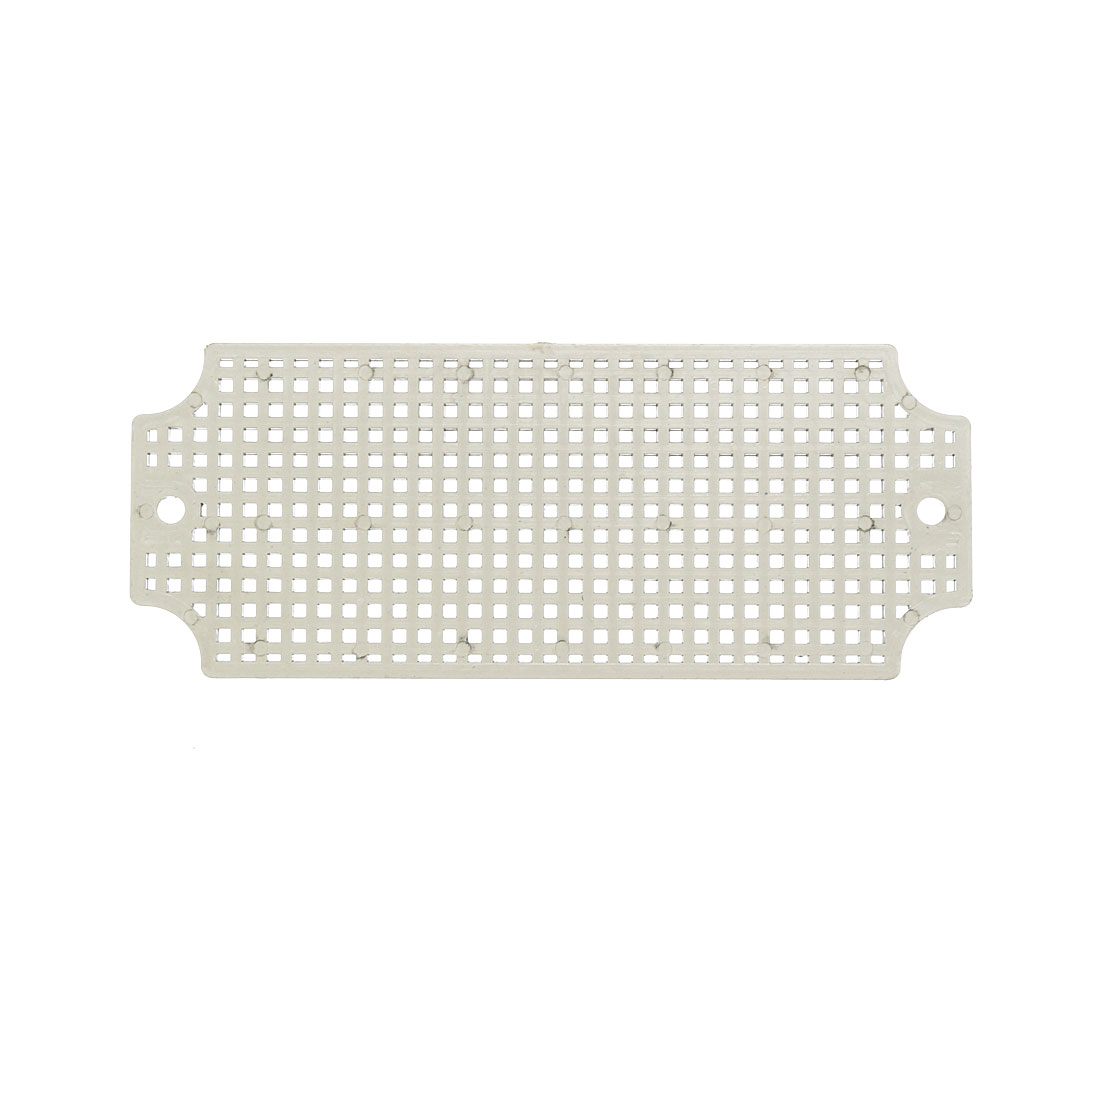 ABS Plastic Internal Panel Suitable for 180mm x 80mm Electrical Junction Box